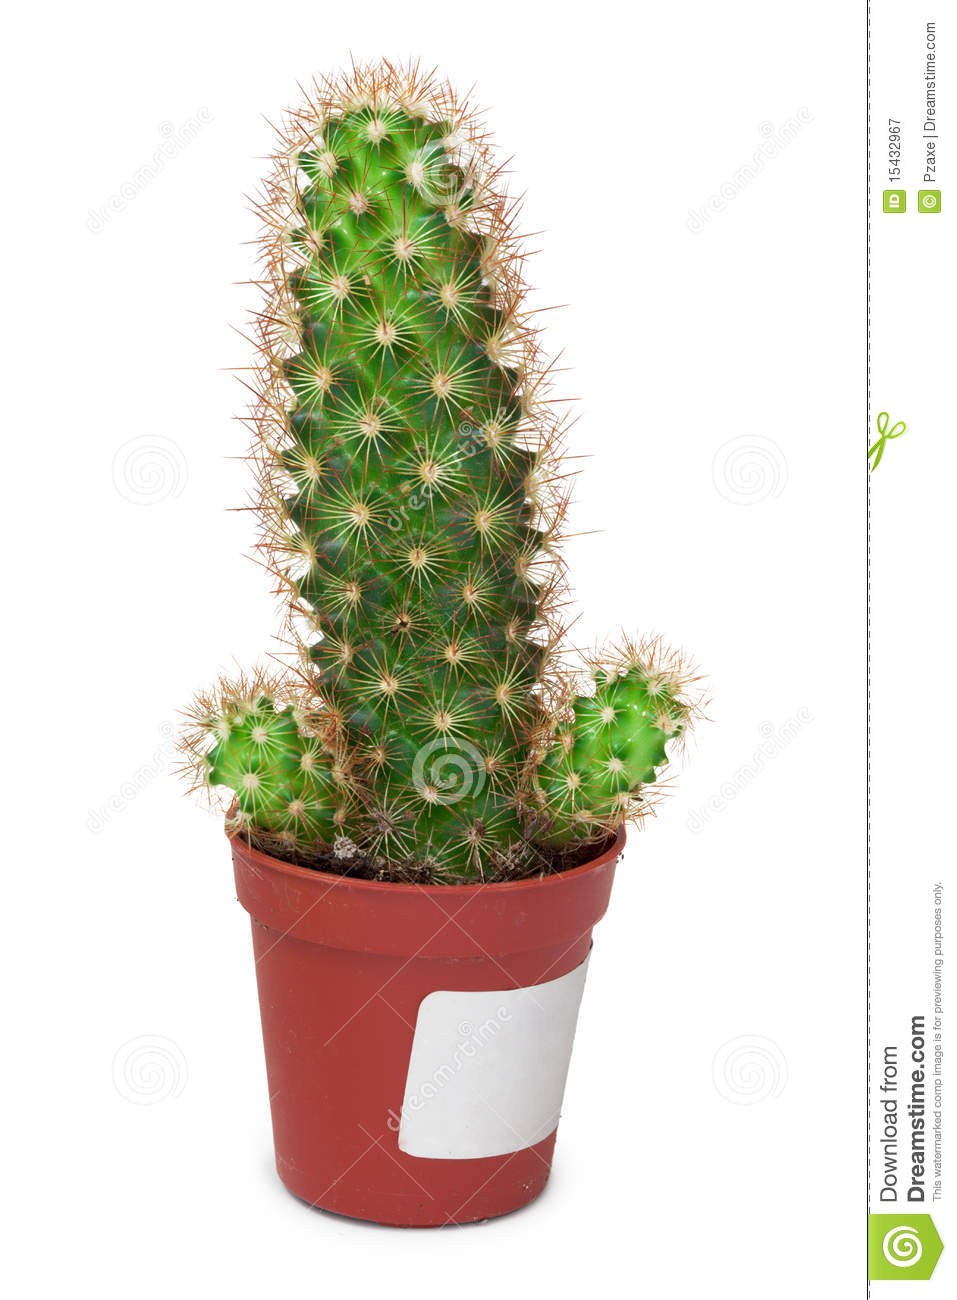 cactus like a penis on white background royalty free stock photography image 15432967. Black Bedroom Furniture Sets. Home Design Ideas